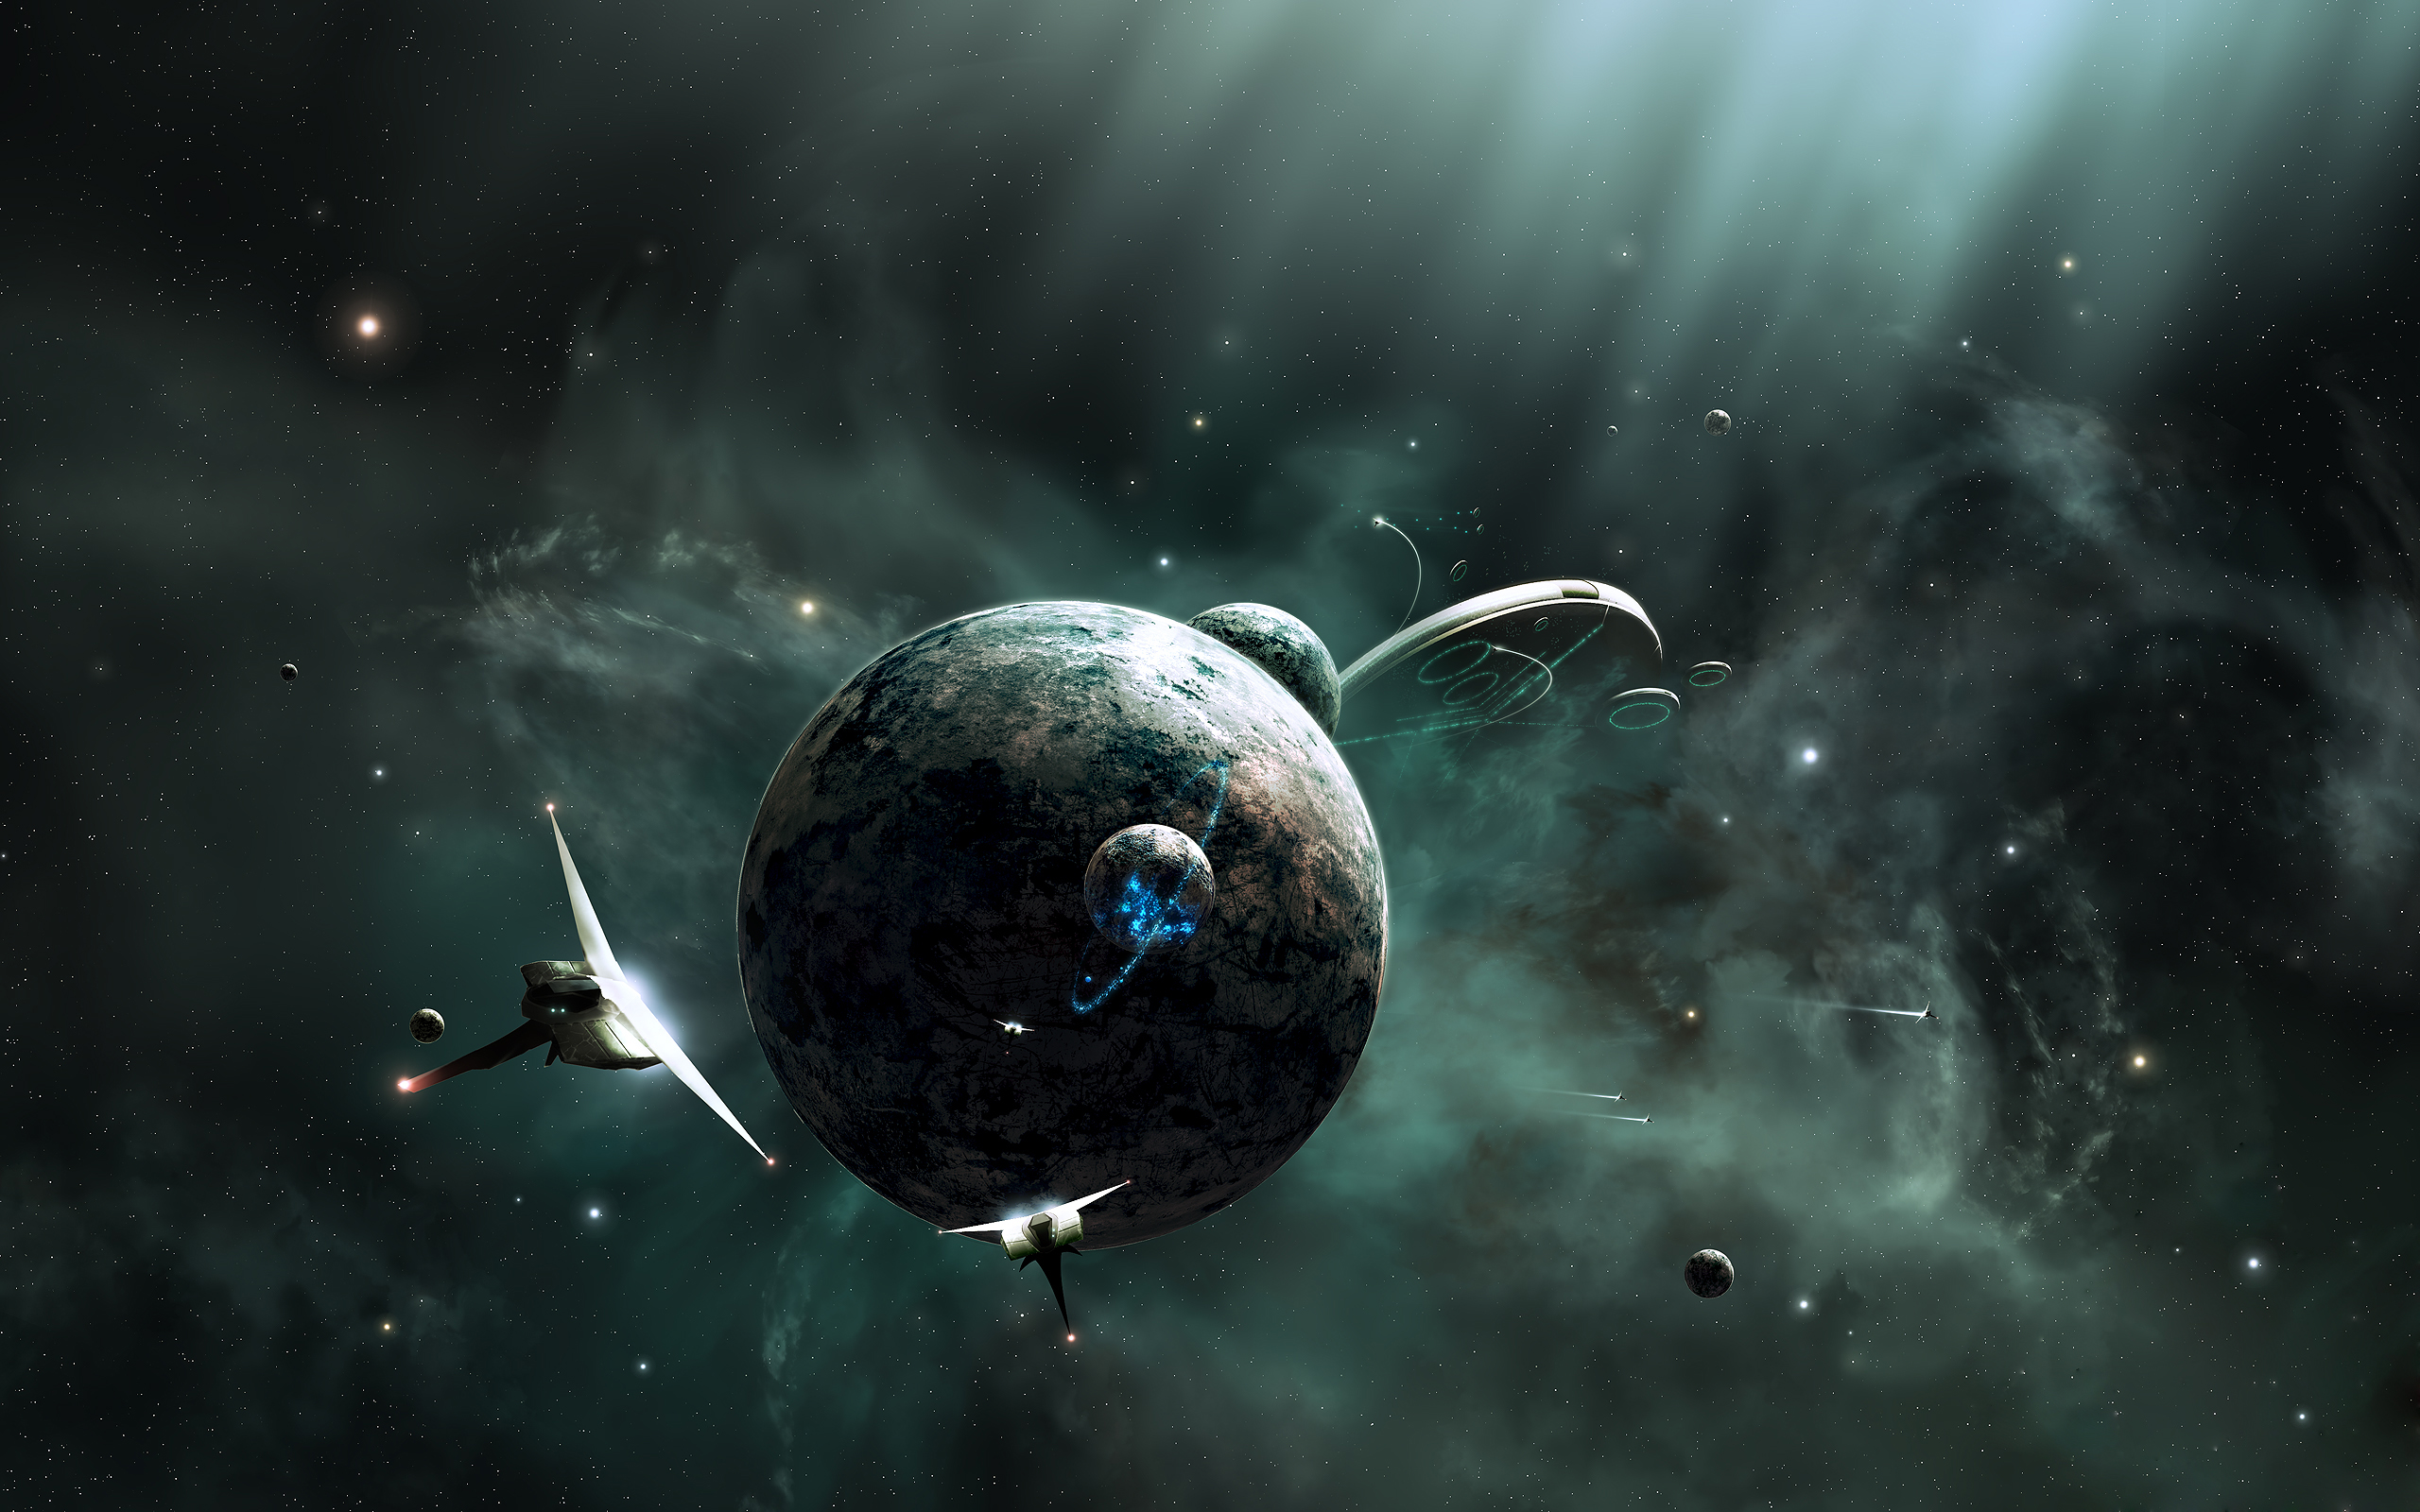 spaceship hd wallpaper | background image | 2560x1600 | id:116380